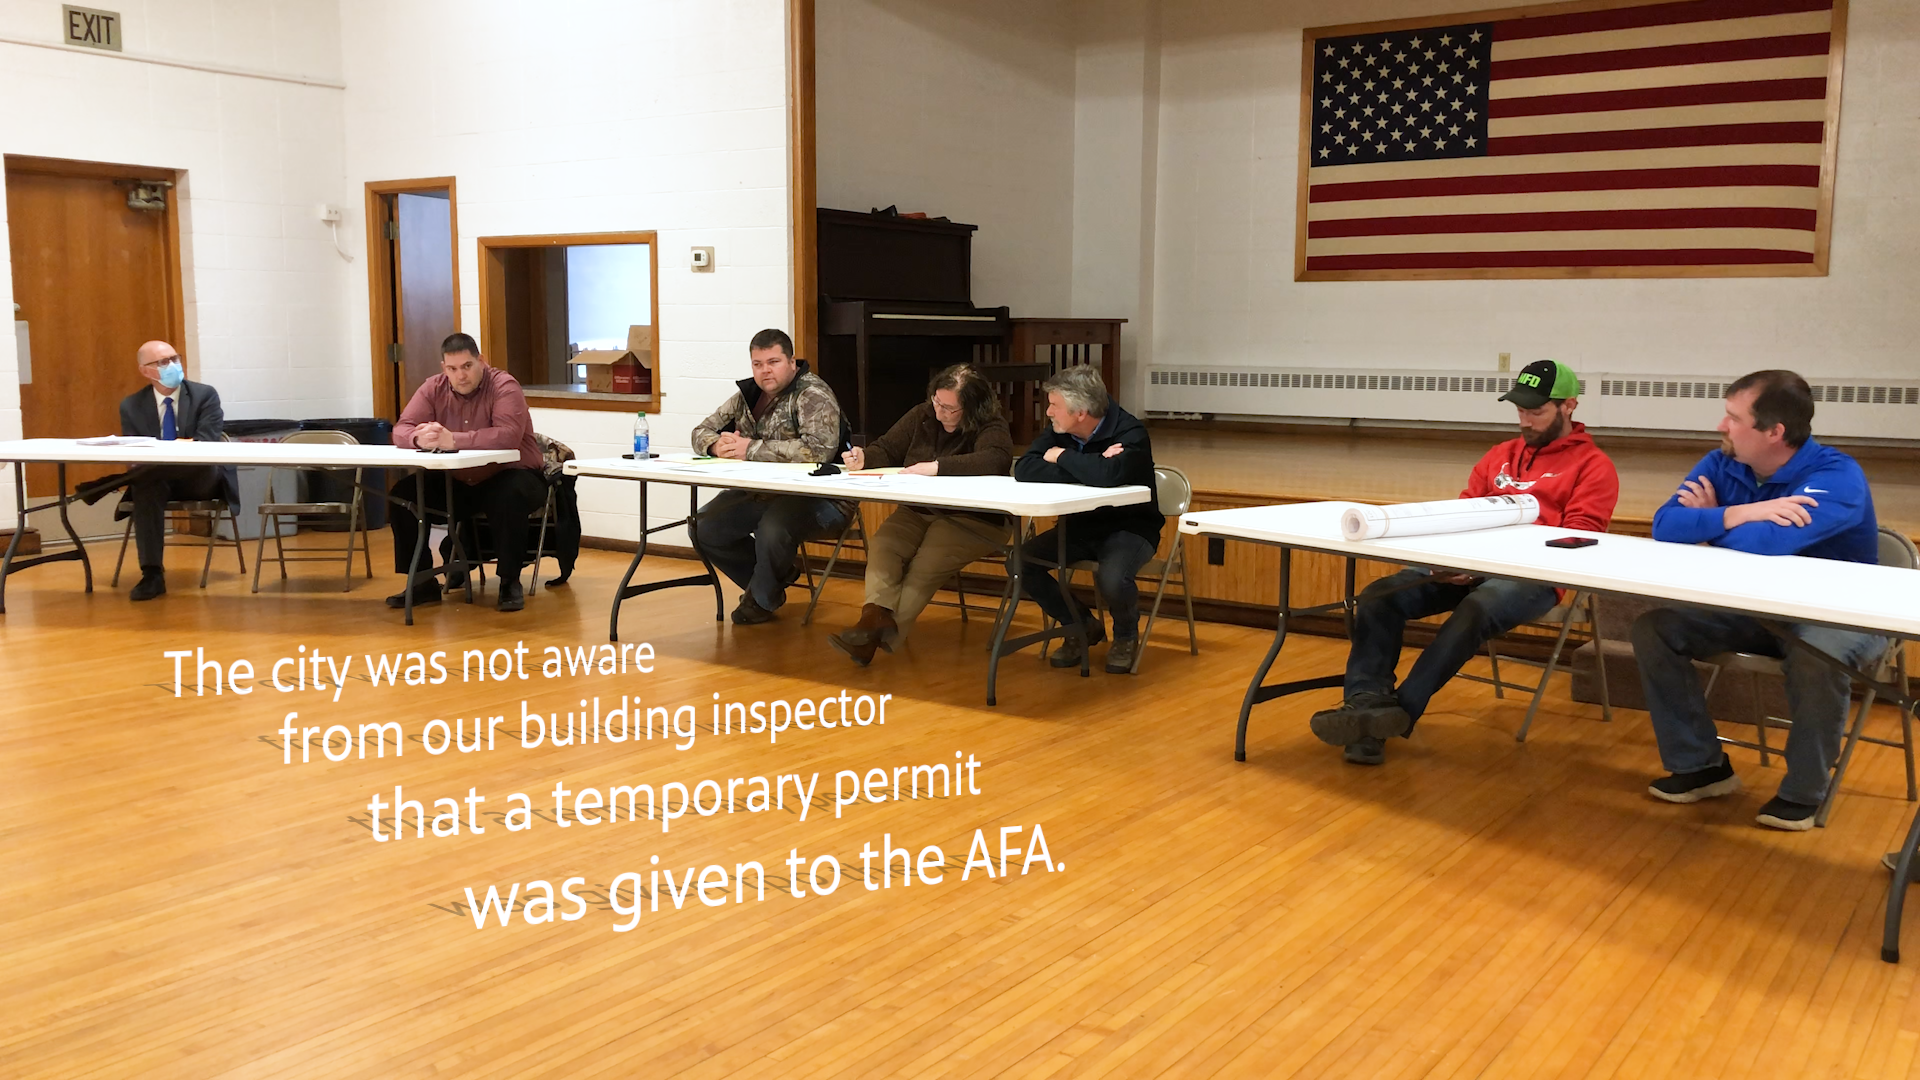 """A photo of the Murdock City Council during their April meeting with text that says, """"The city was not aware from our building inspector that a temporary permit was given to the AFA."""""""